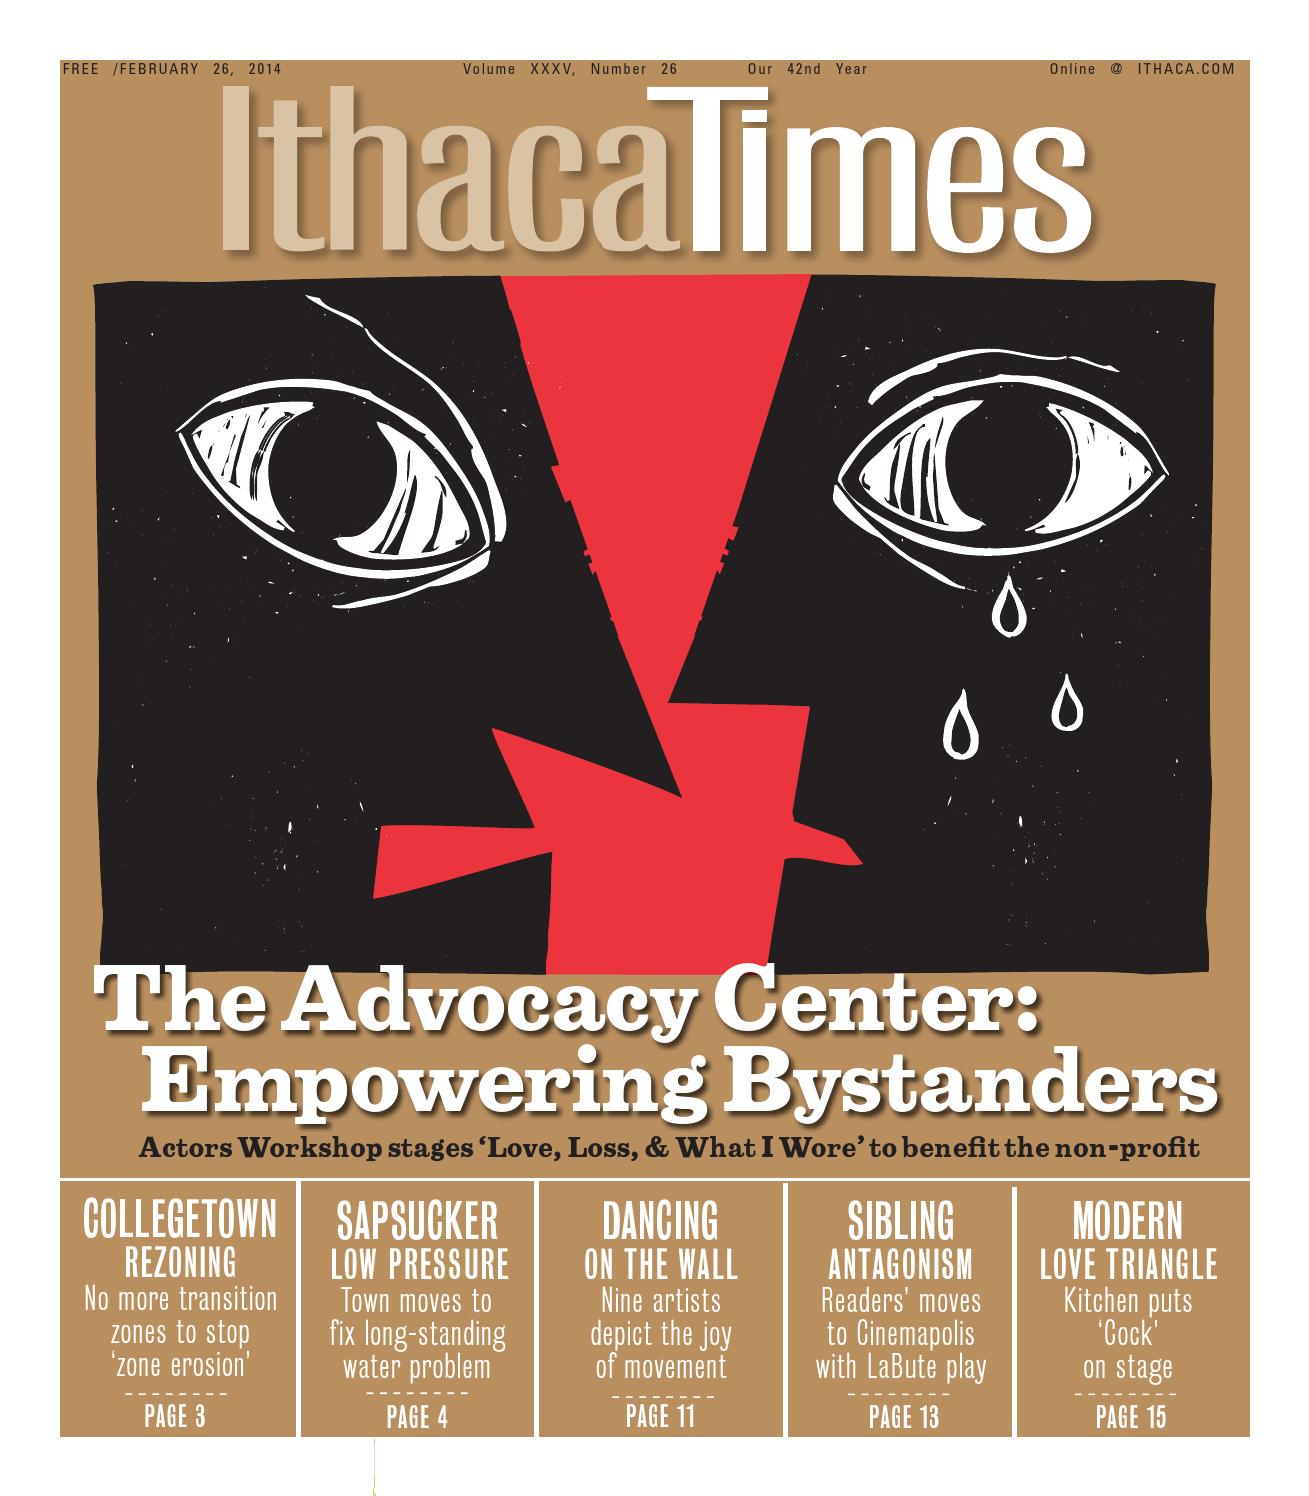 Ithaca Times by Ithaca Times - issuu